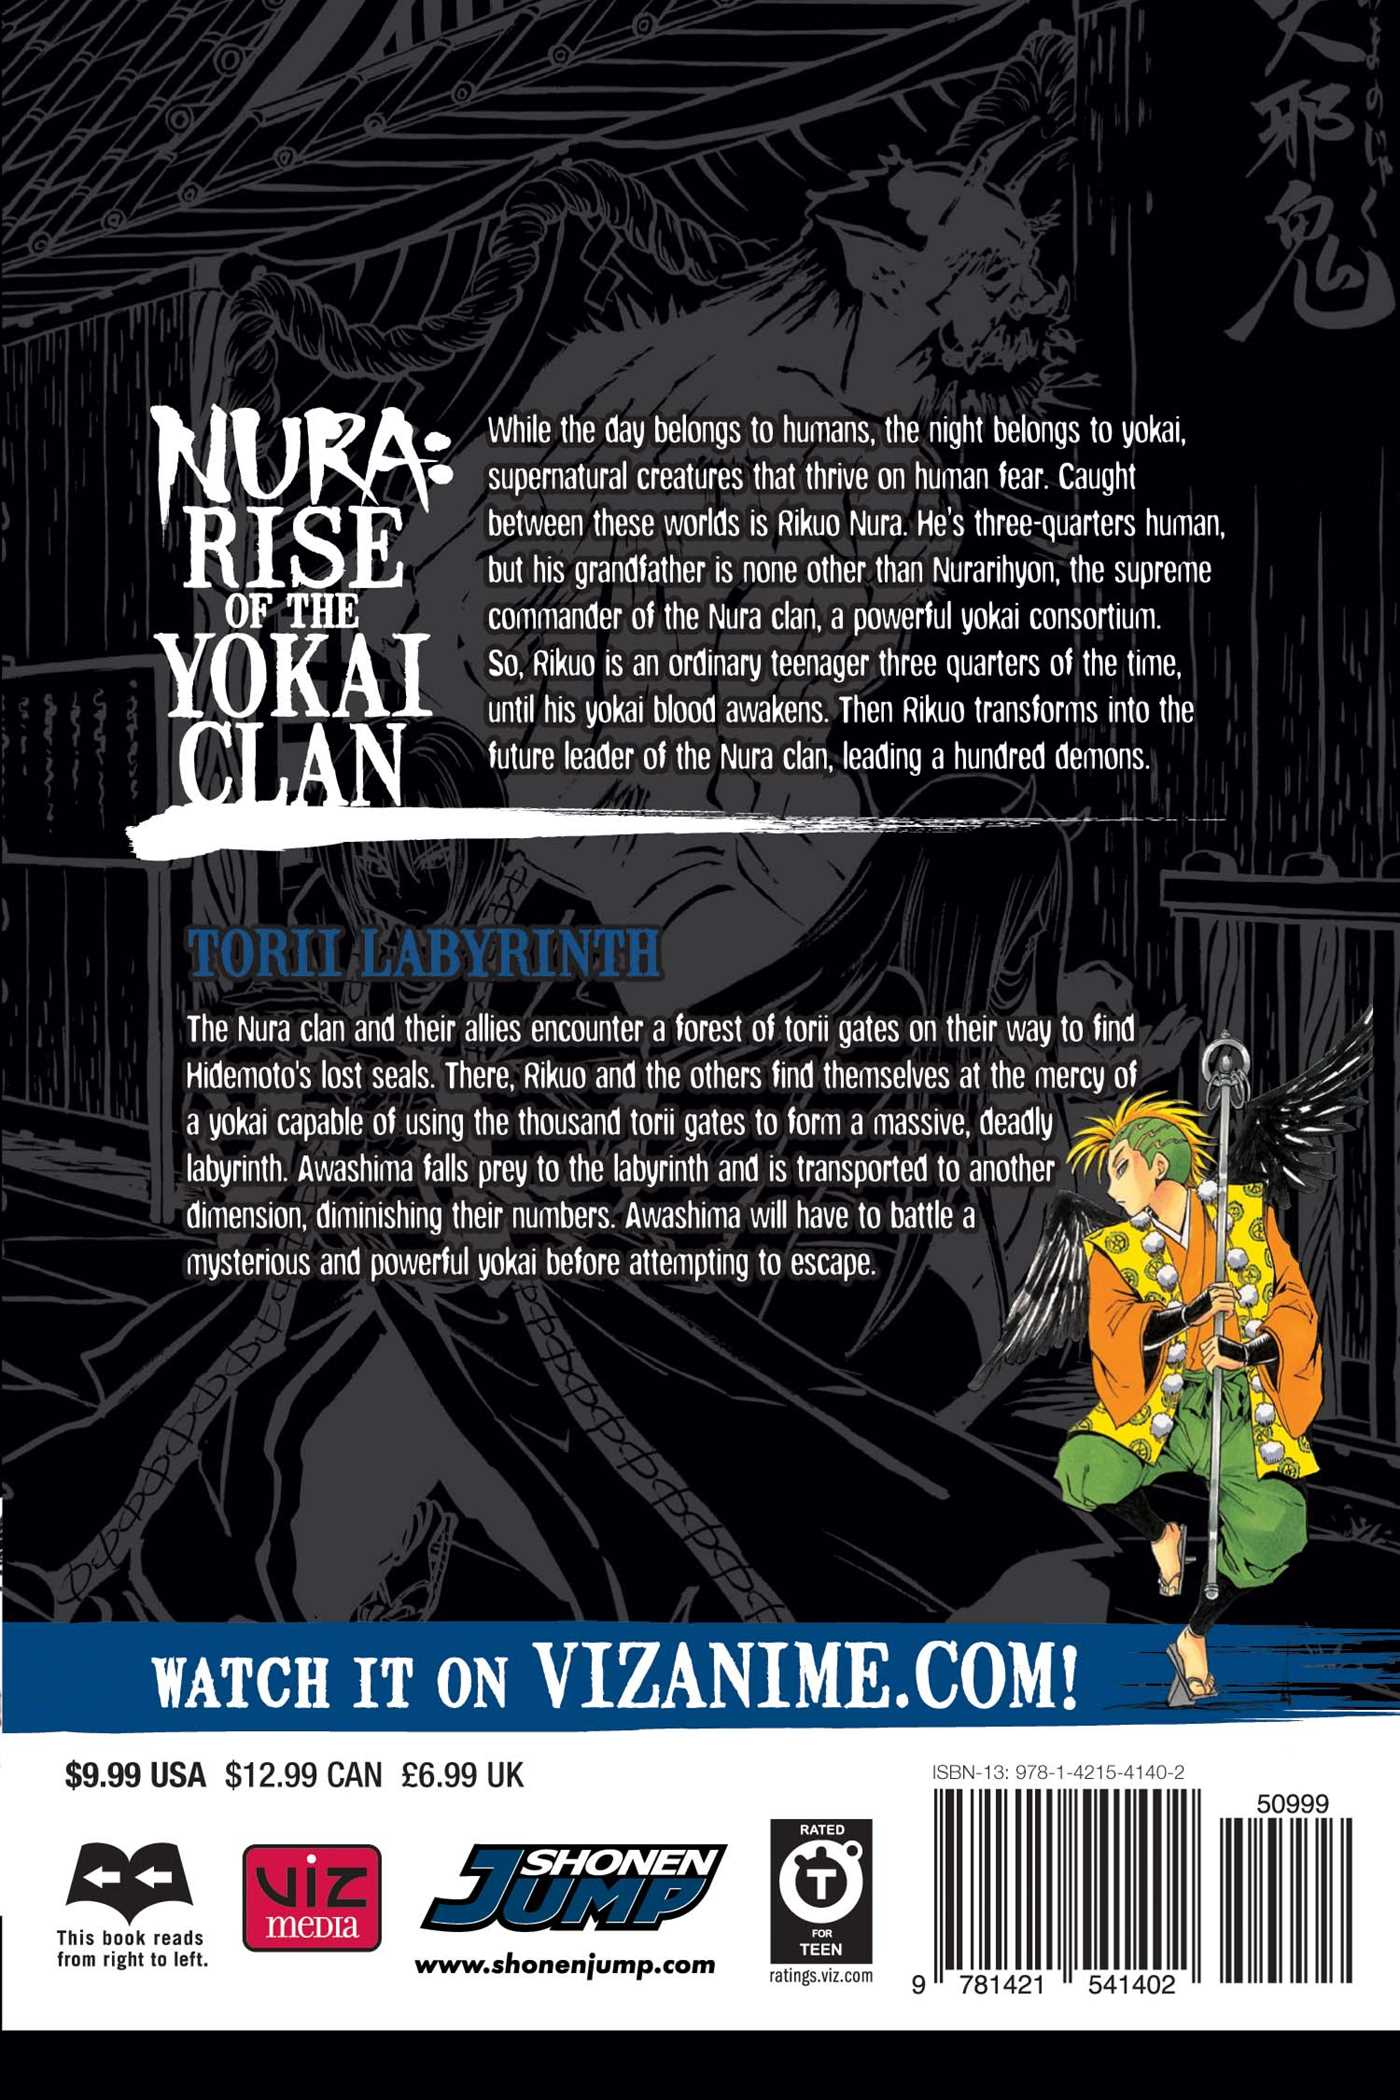 Nura-rise-of-the-yokai-clan-vol-11-9781421541402_hr-back